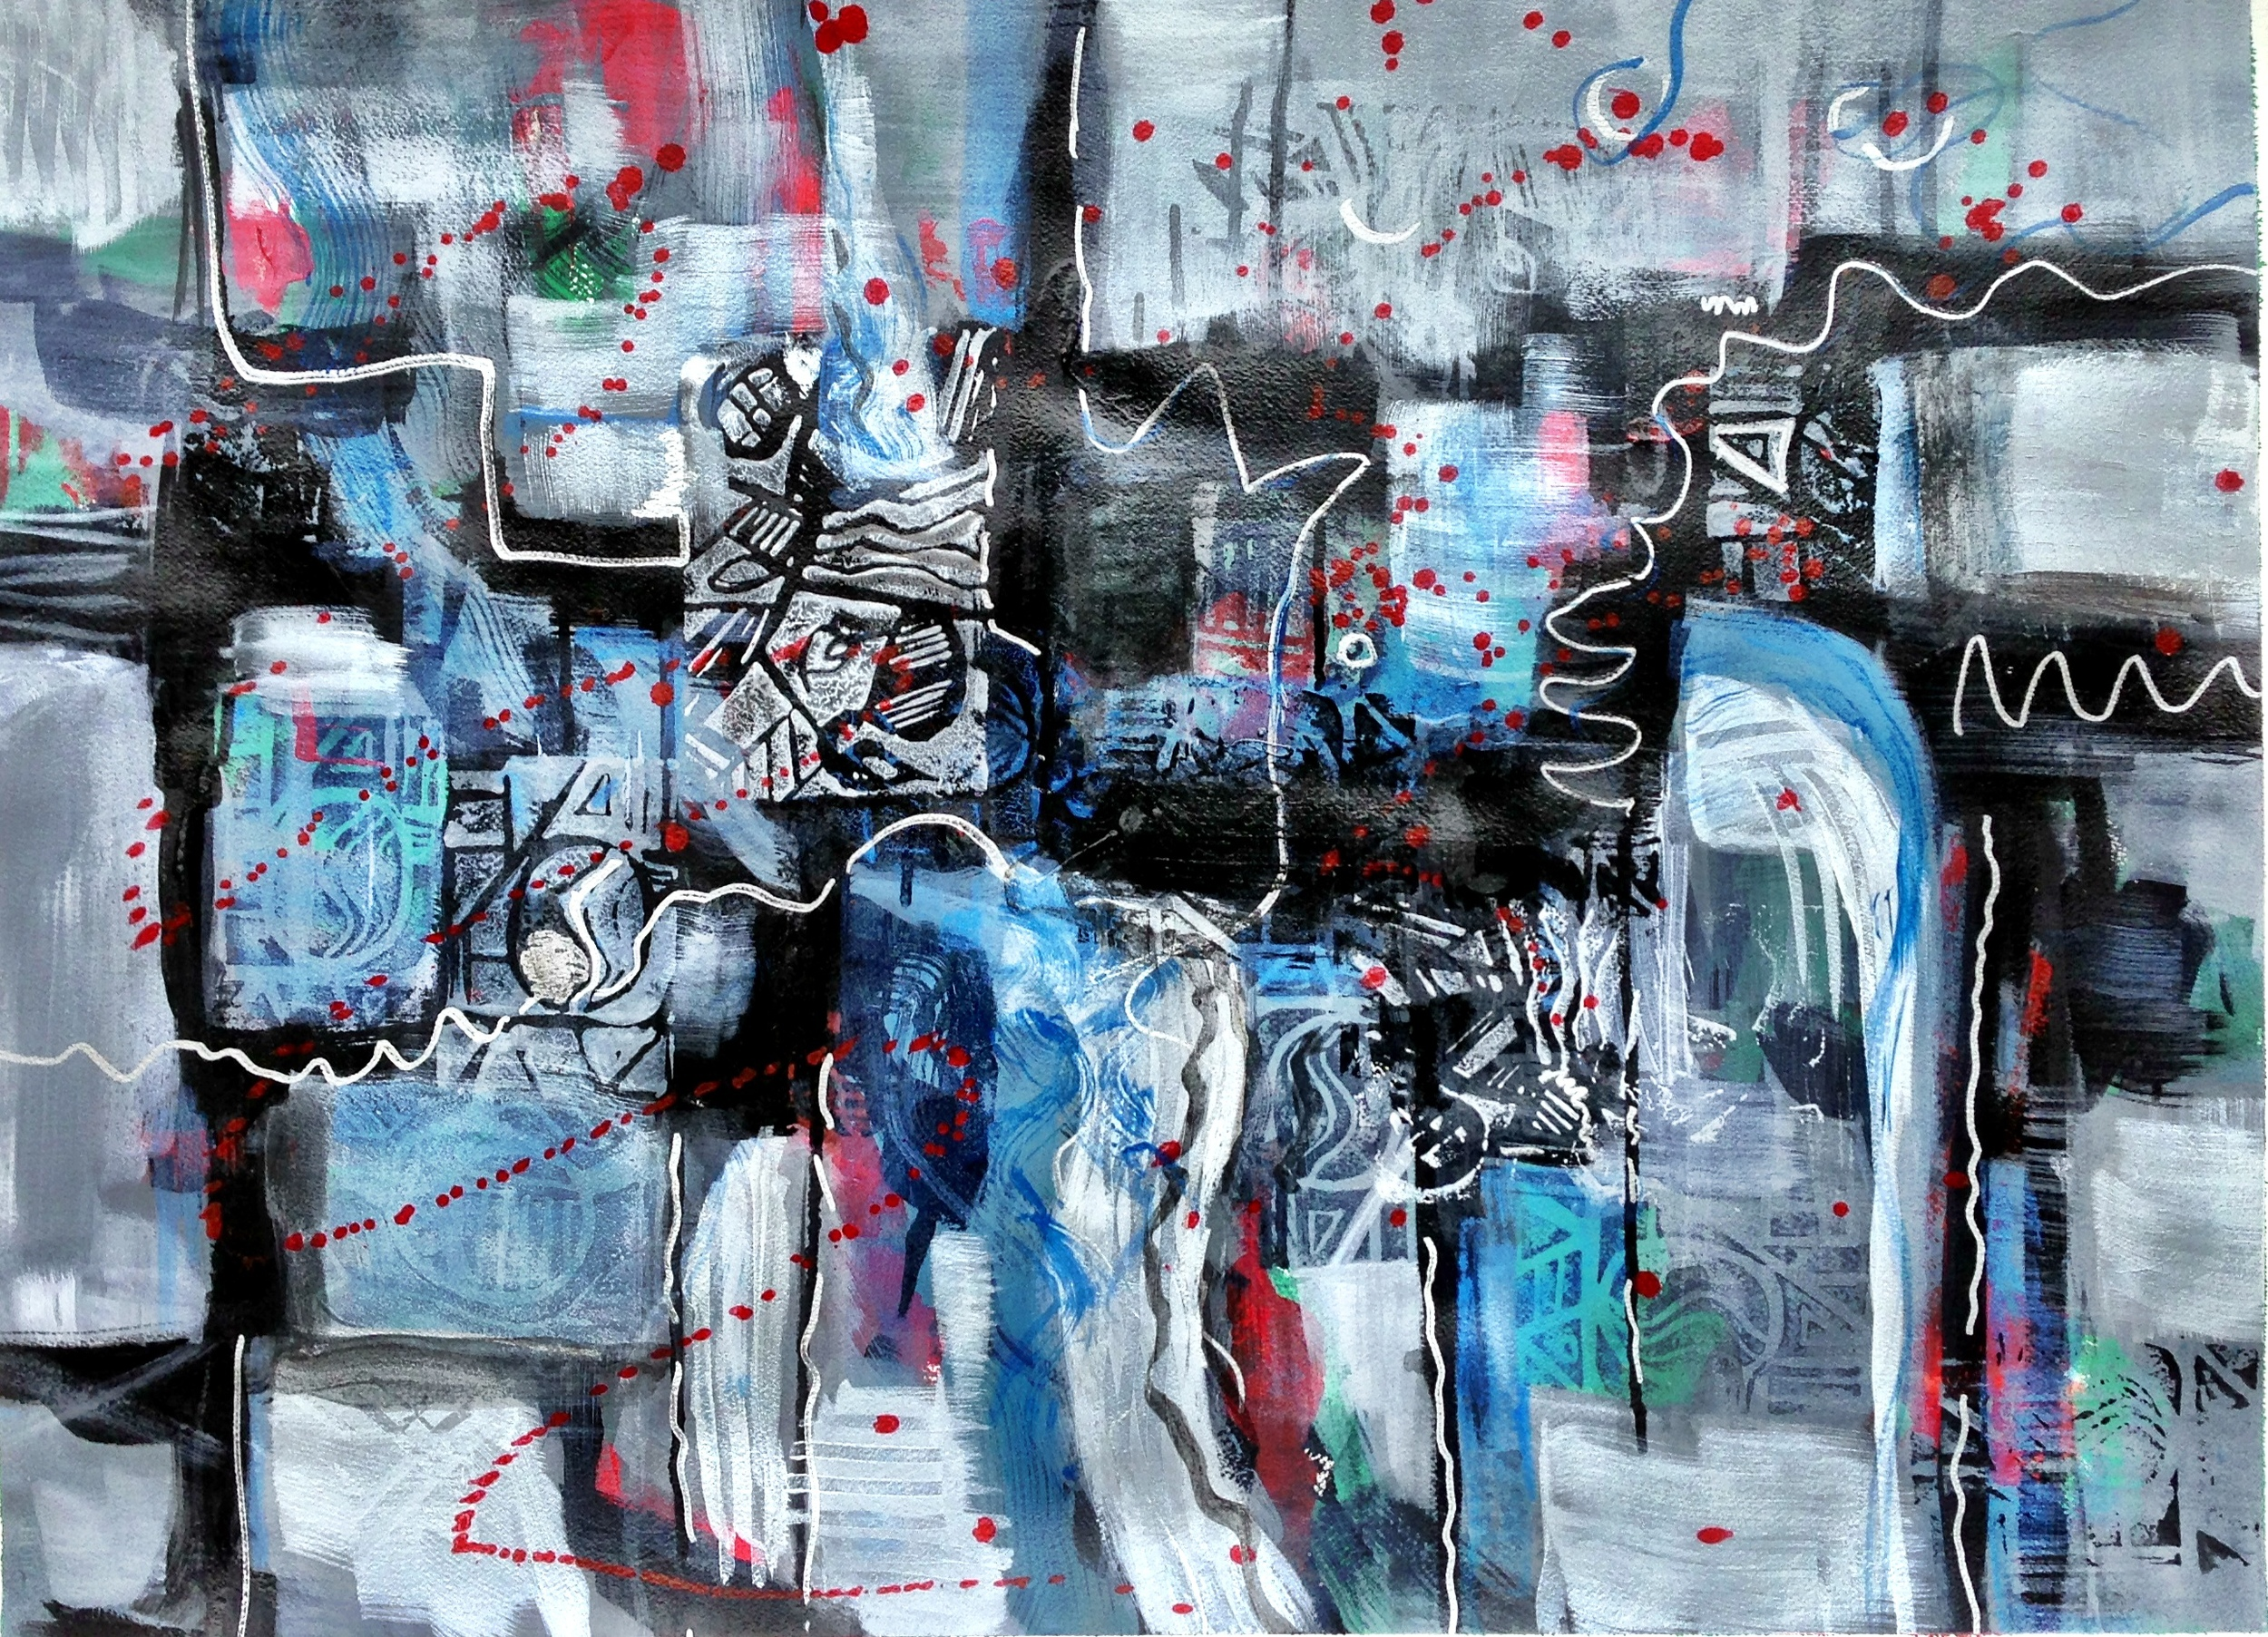 Blue Wall  Mixed media on paper, 22x30 available